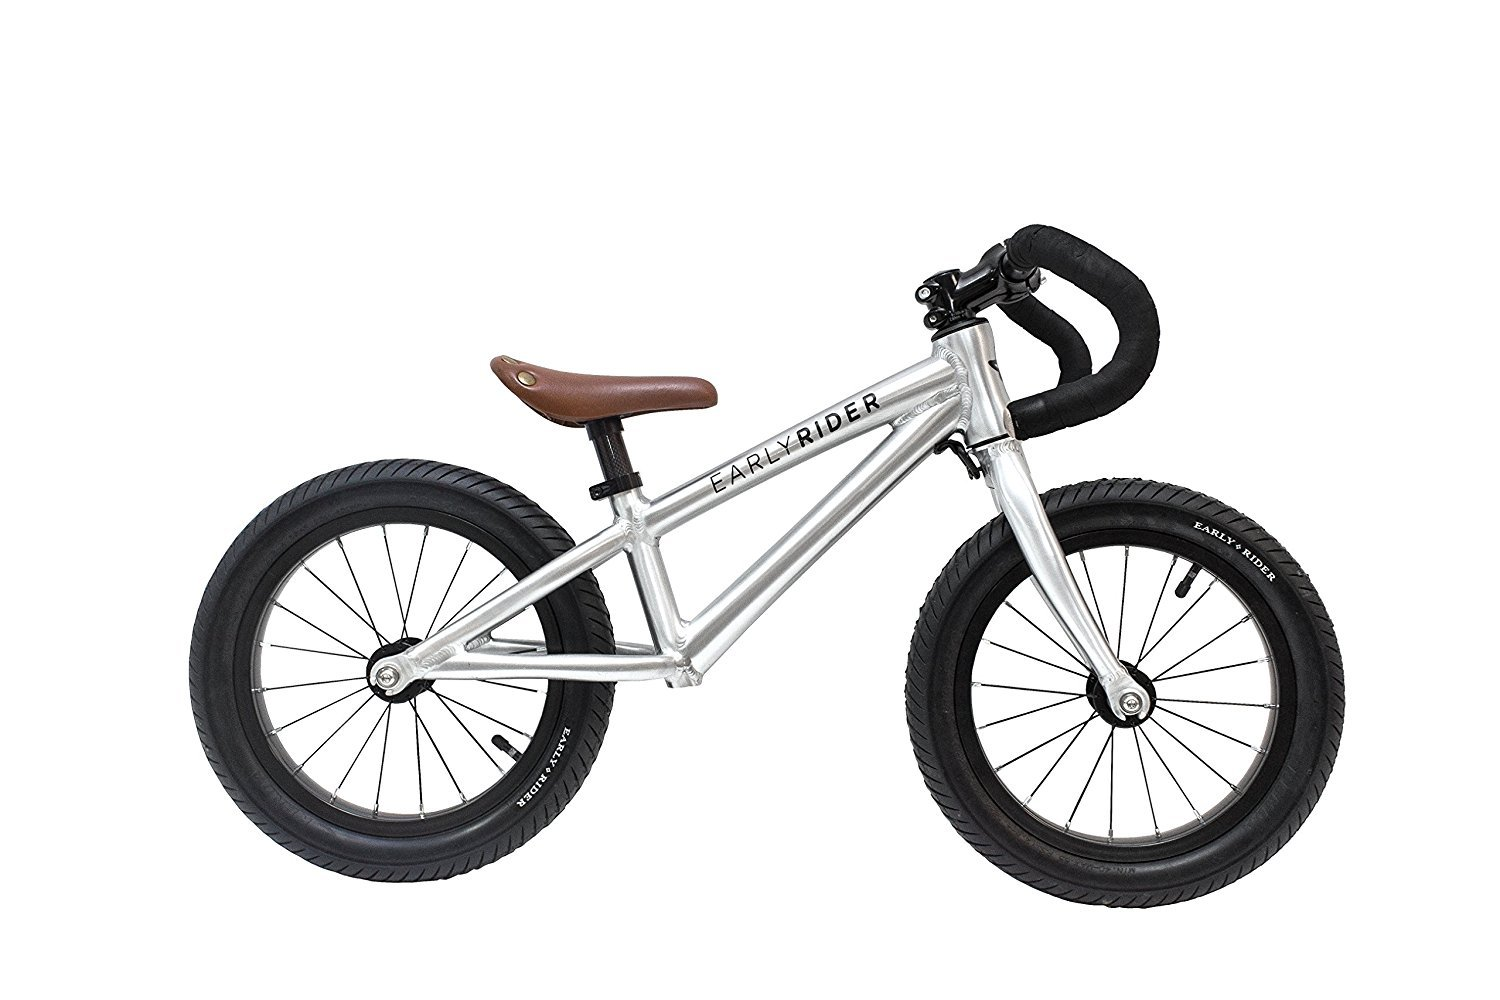 Early Rider Road Early Runner Balance Bike Rider Balance 14 Silver [並行輸入品] B074V8MD8N, メガネ工場:ebbde782 --- hasznalttraktor.e-tarhely.info